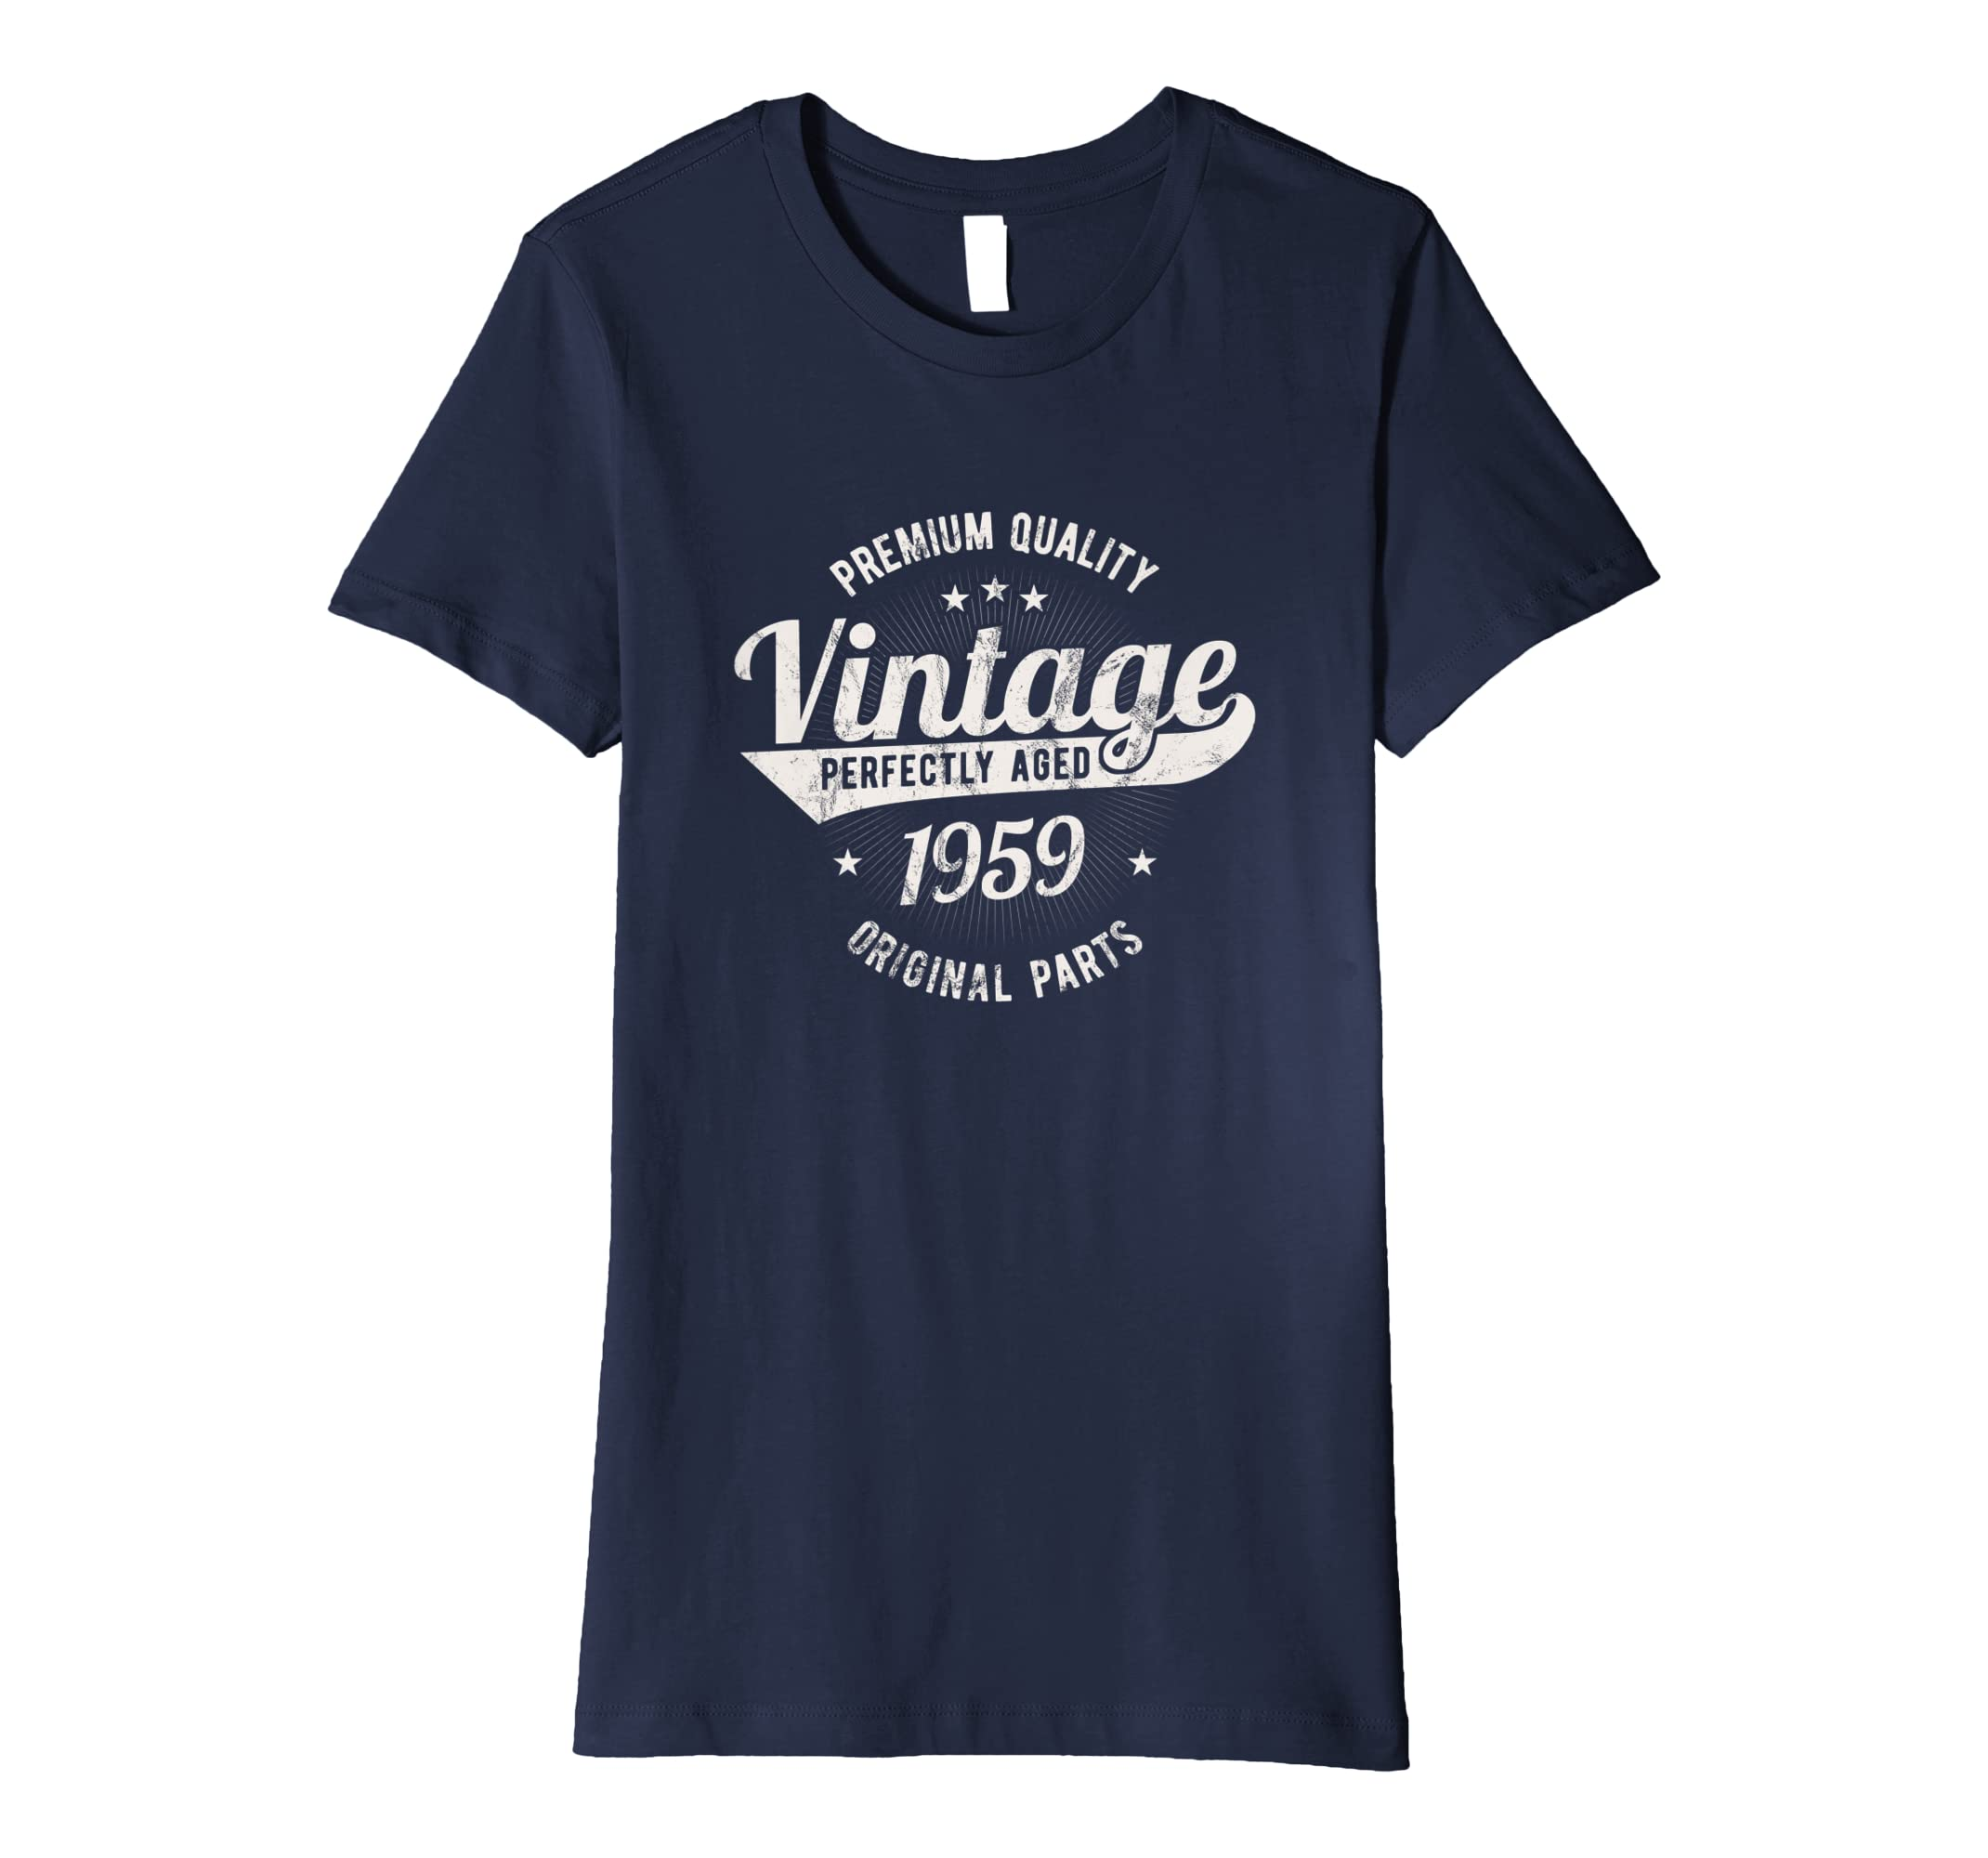 6bf583e23 Vintage Est 1959 T-Shirt 60 Years Old 60th Birthday Gift: Amazon.co.uk:  Clothing